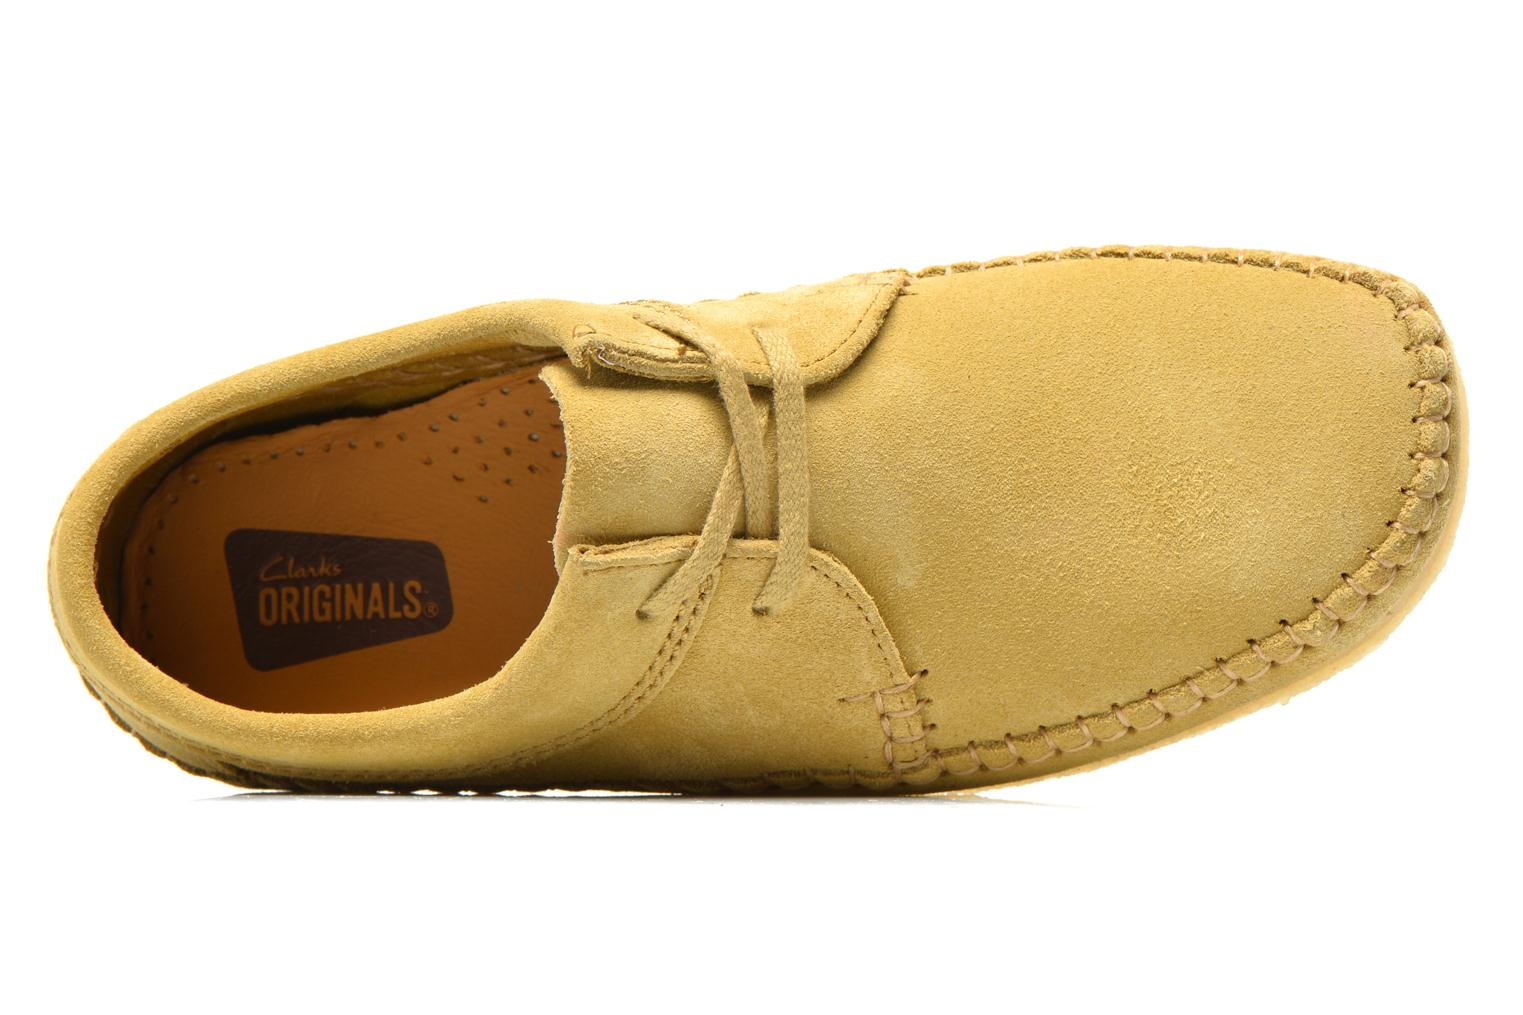 Lace-up shoes Clarks Originals Weaver M Beige view from the left